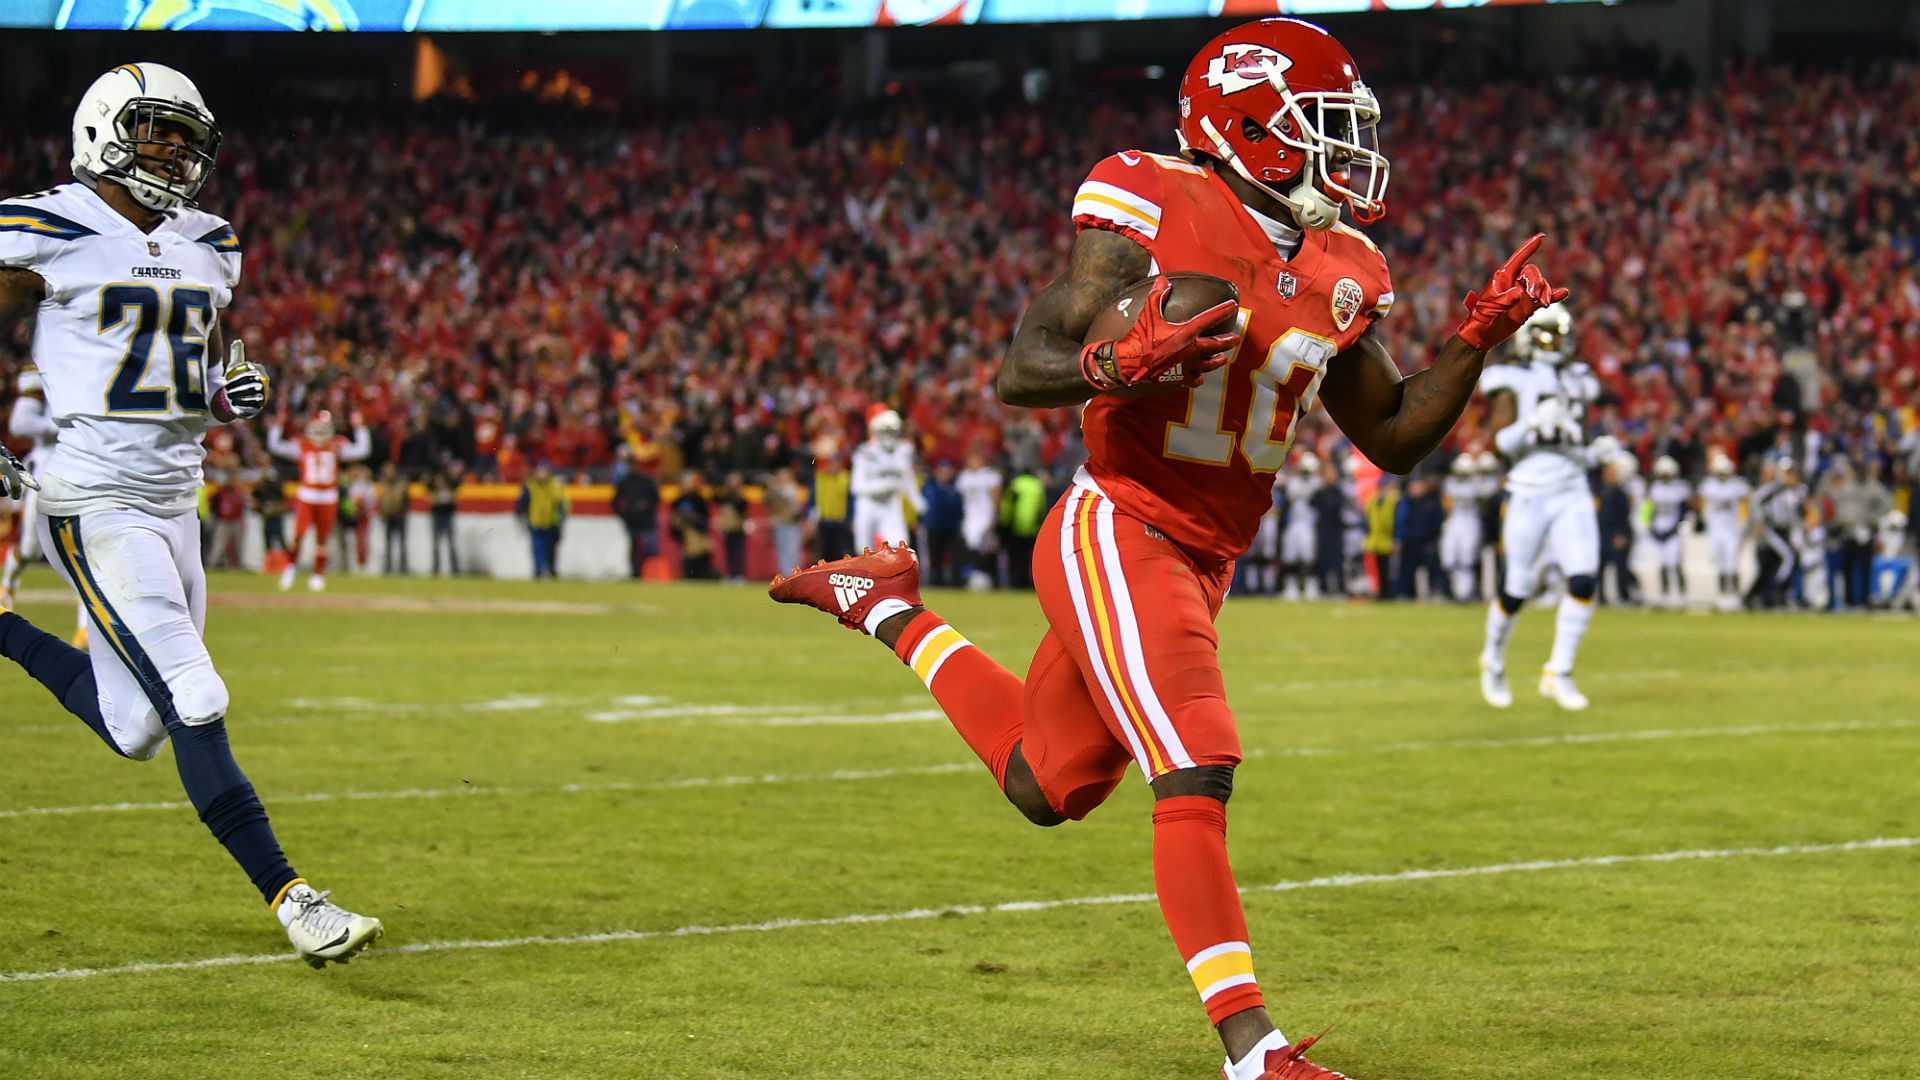 Chargers vs. Chiefs: Score, results, highlights from Saturday night game in Kansas City